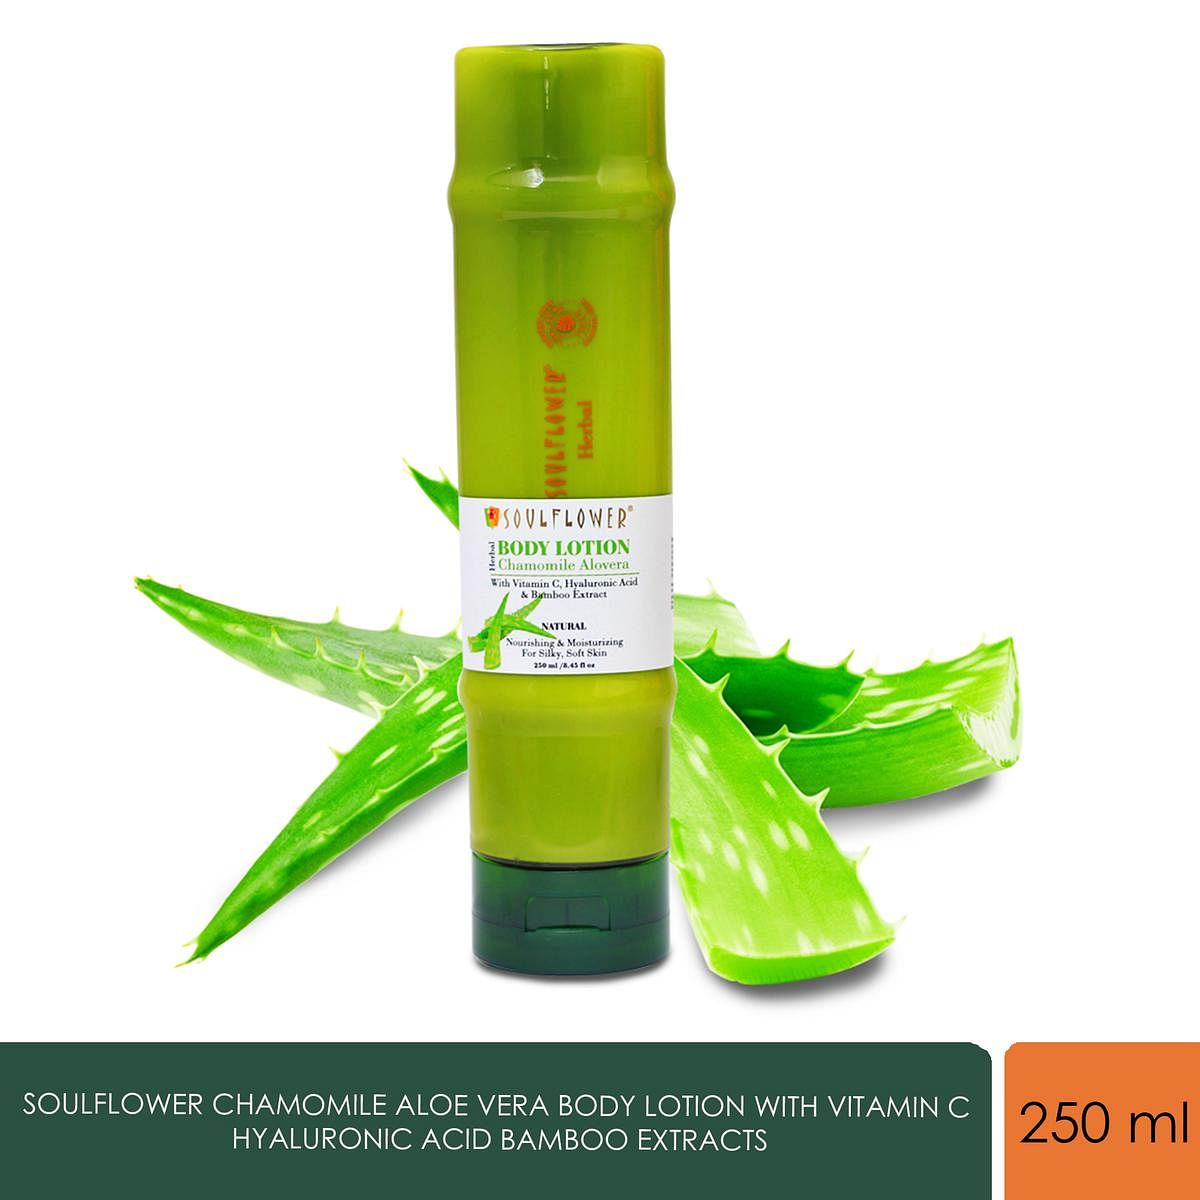 Soulflower Chamomile Aloe Vera Body Lotion with Vitamin C Hyaluronic Acid Bamboo Extracts, 250ml